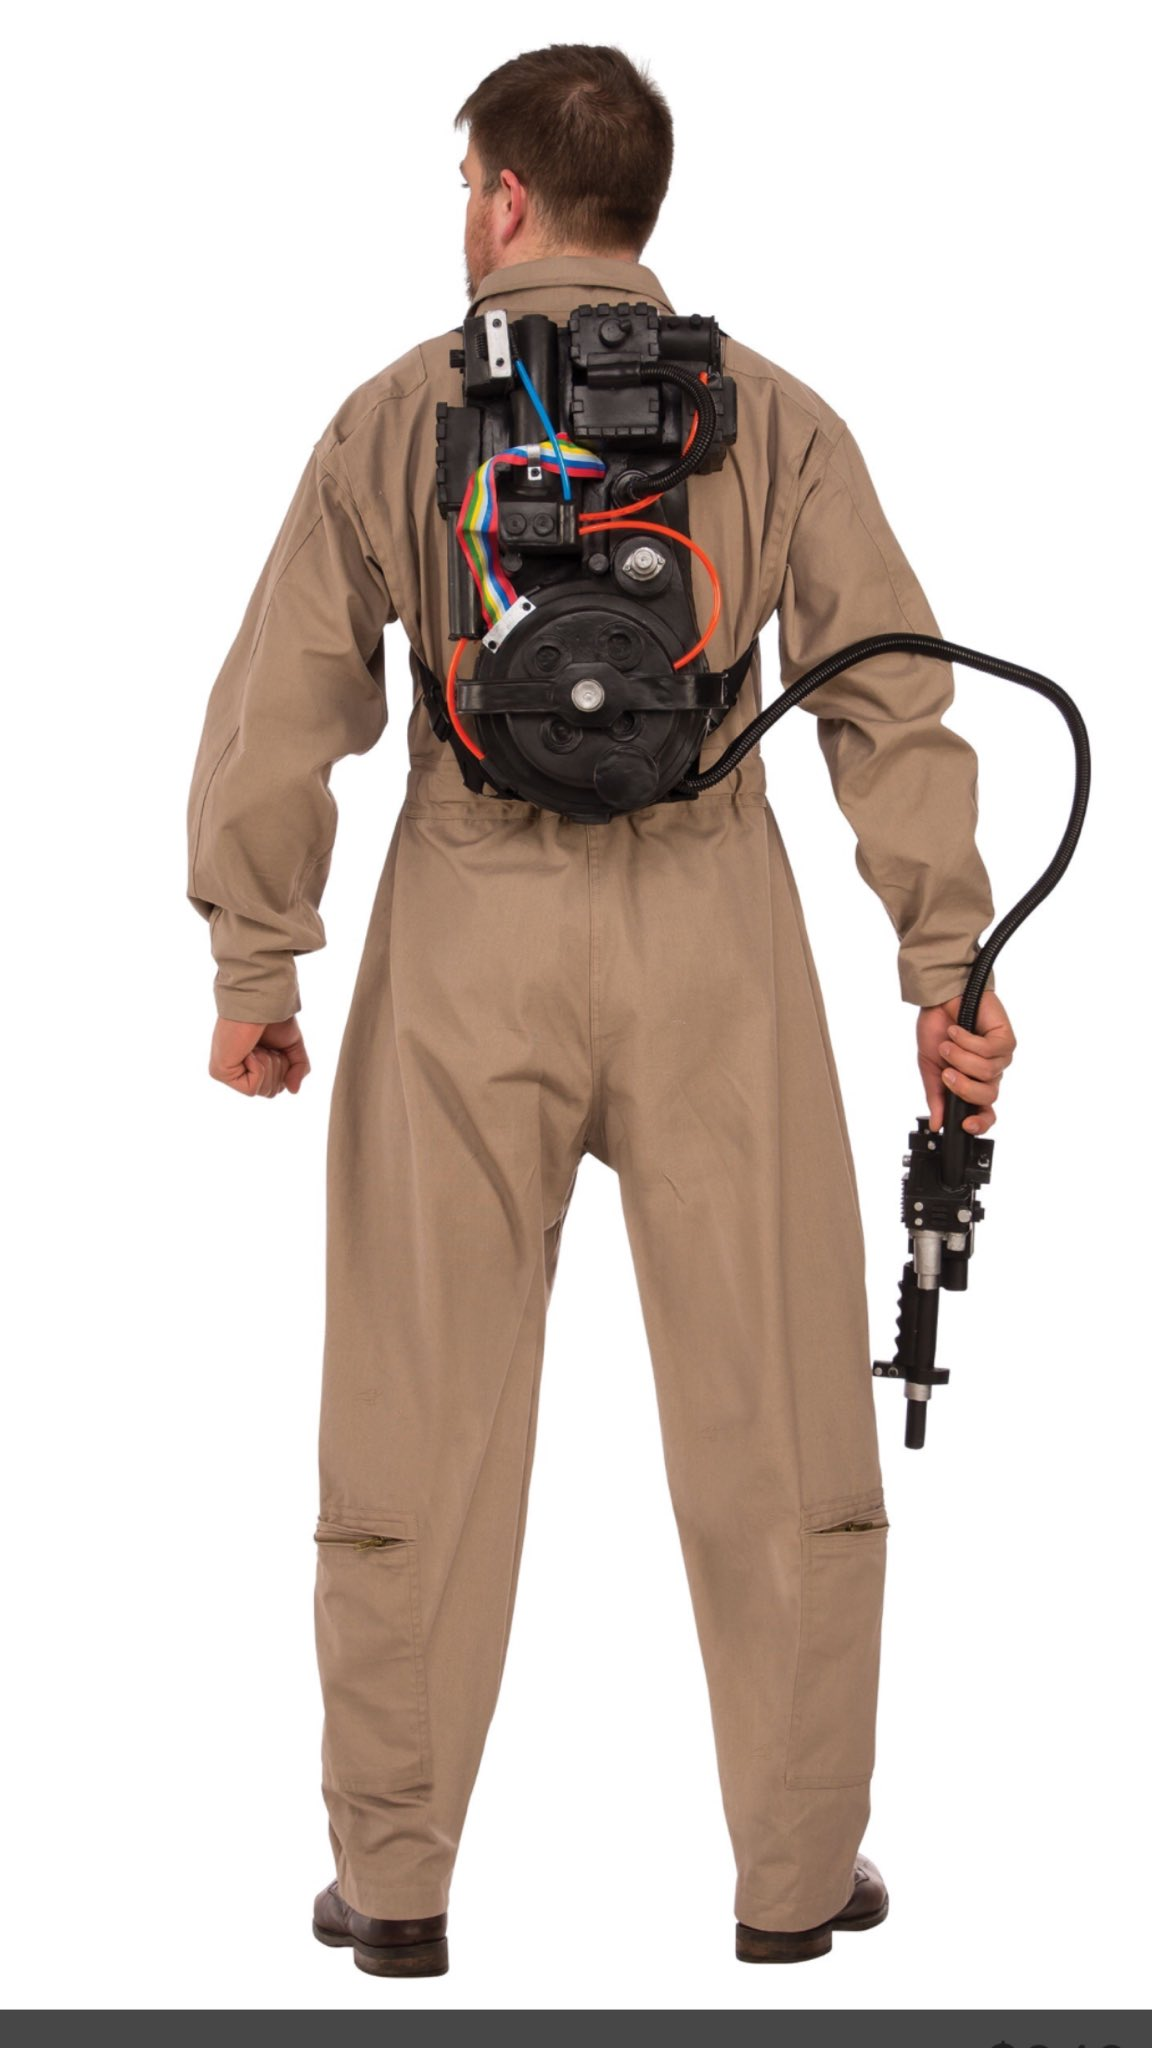 My proton pack shrunk in the wash https://t.co/mMWwjbH4W0